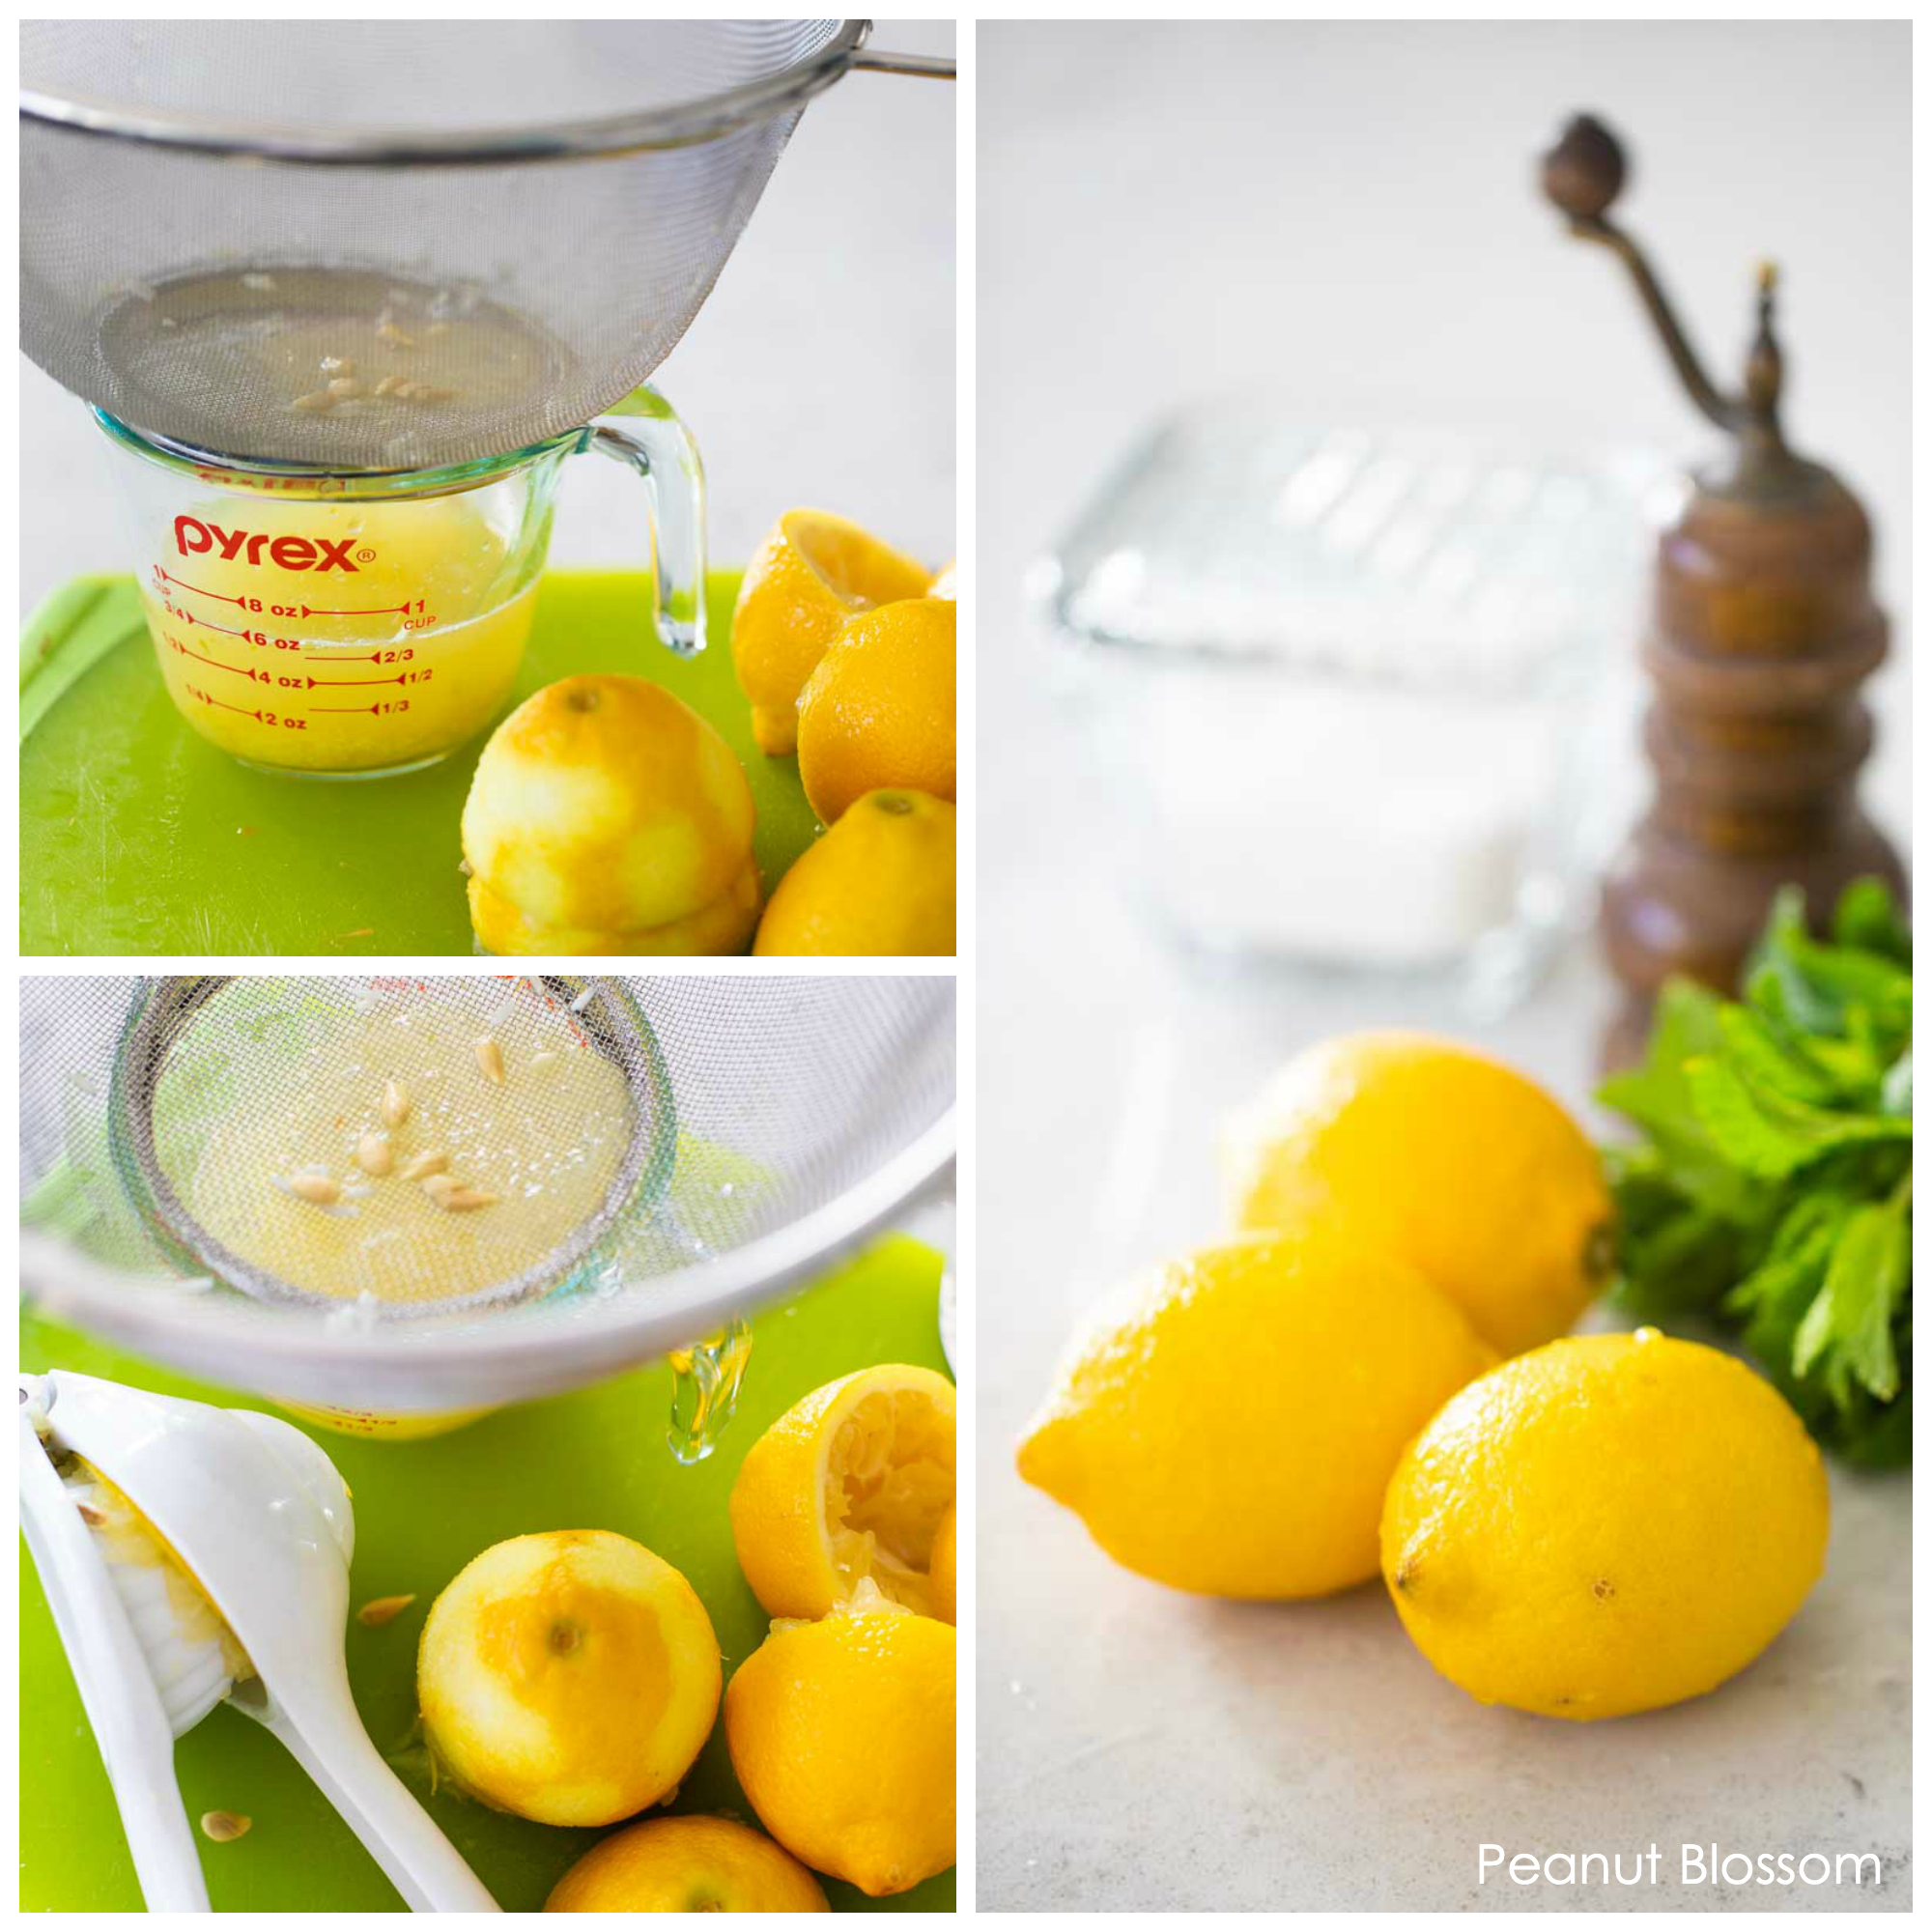 Collect the seeds from fresh lemons by squeezing them over a strainer.